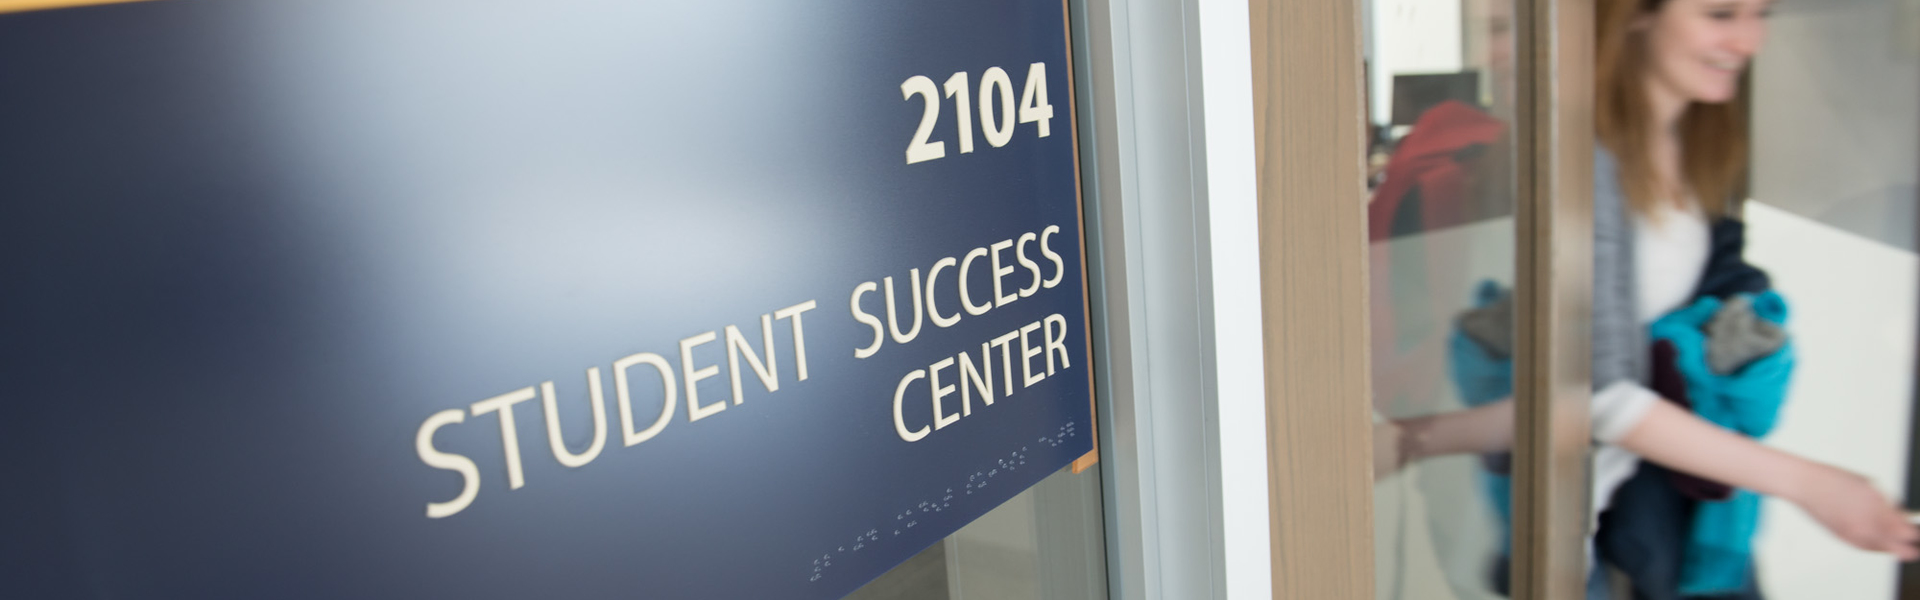 Student leaving the Student Success Center with a wonderful smile on her face